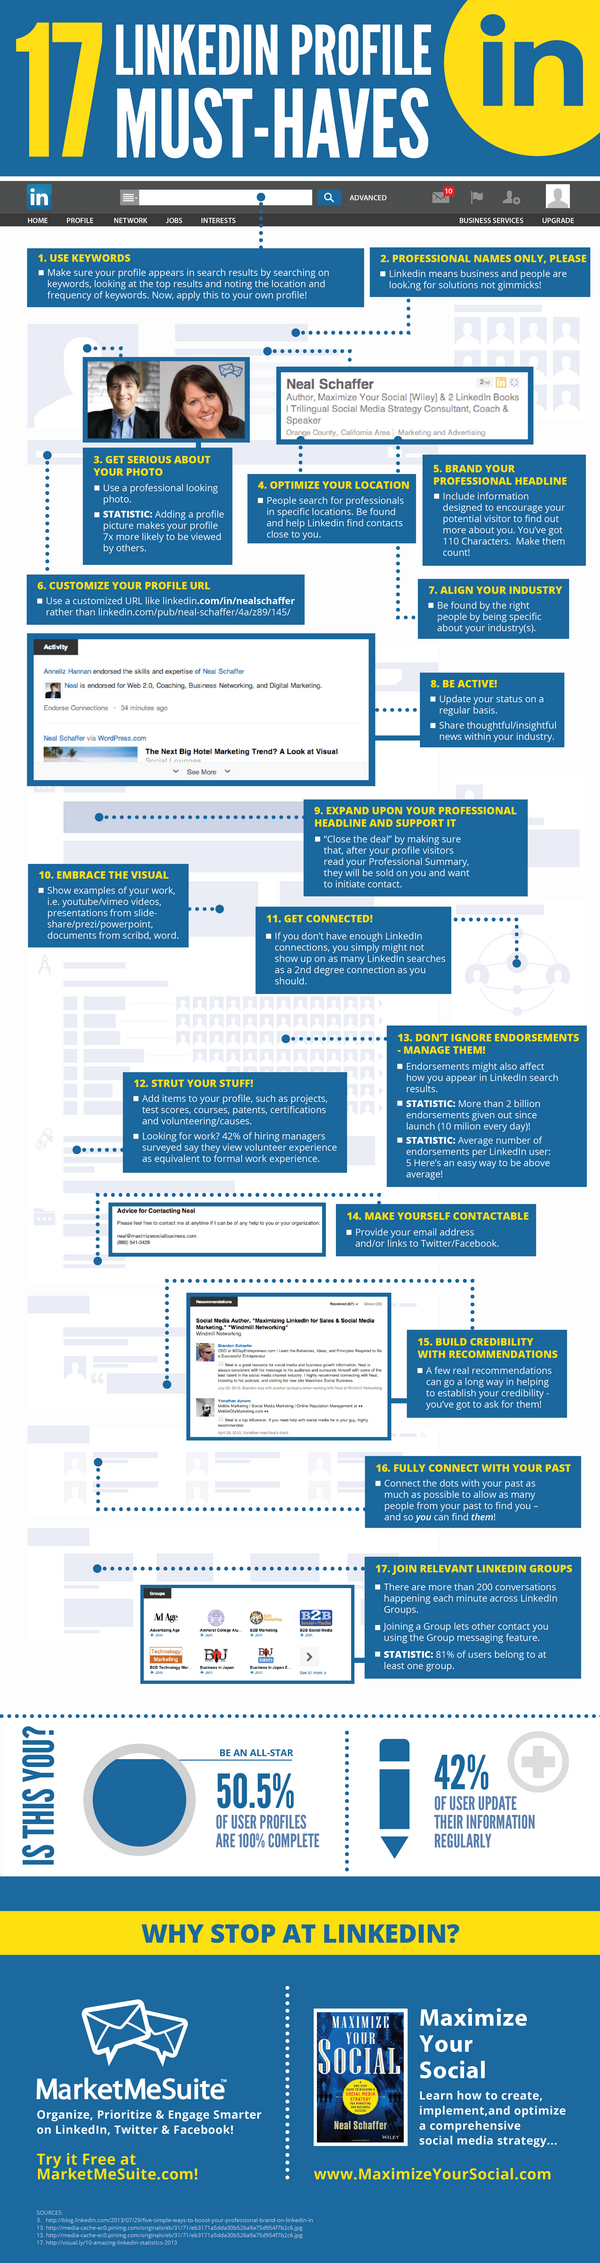 LinkedIn-Perfect-Profile-Tips-Summary-InfographicX600